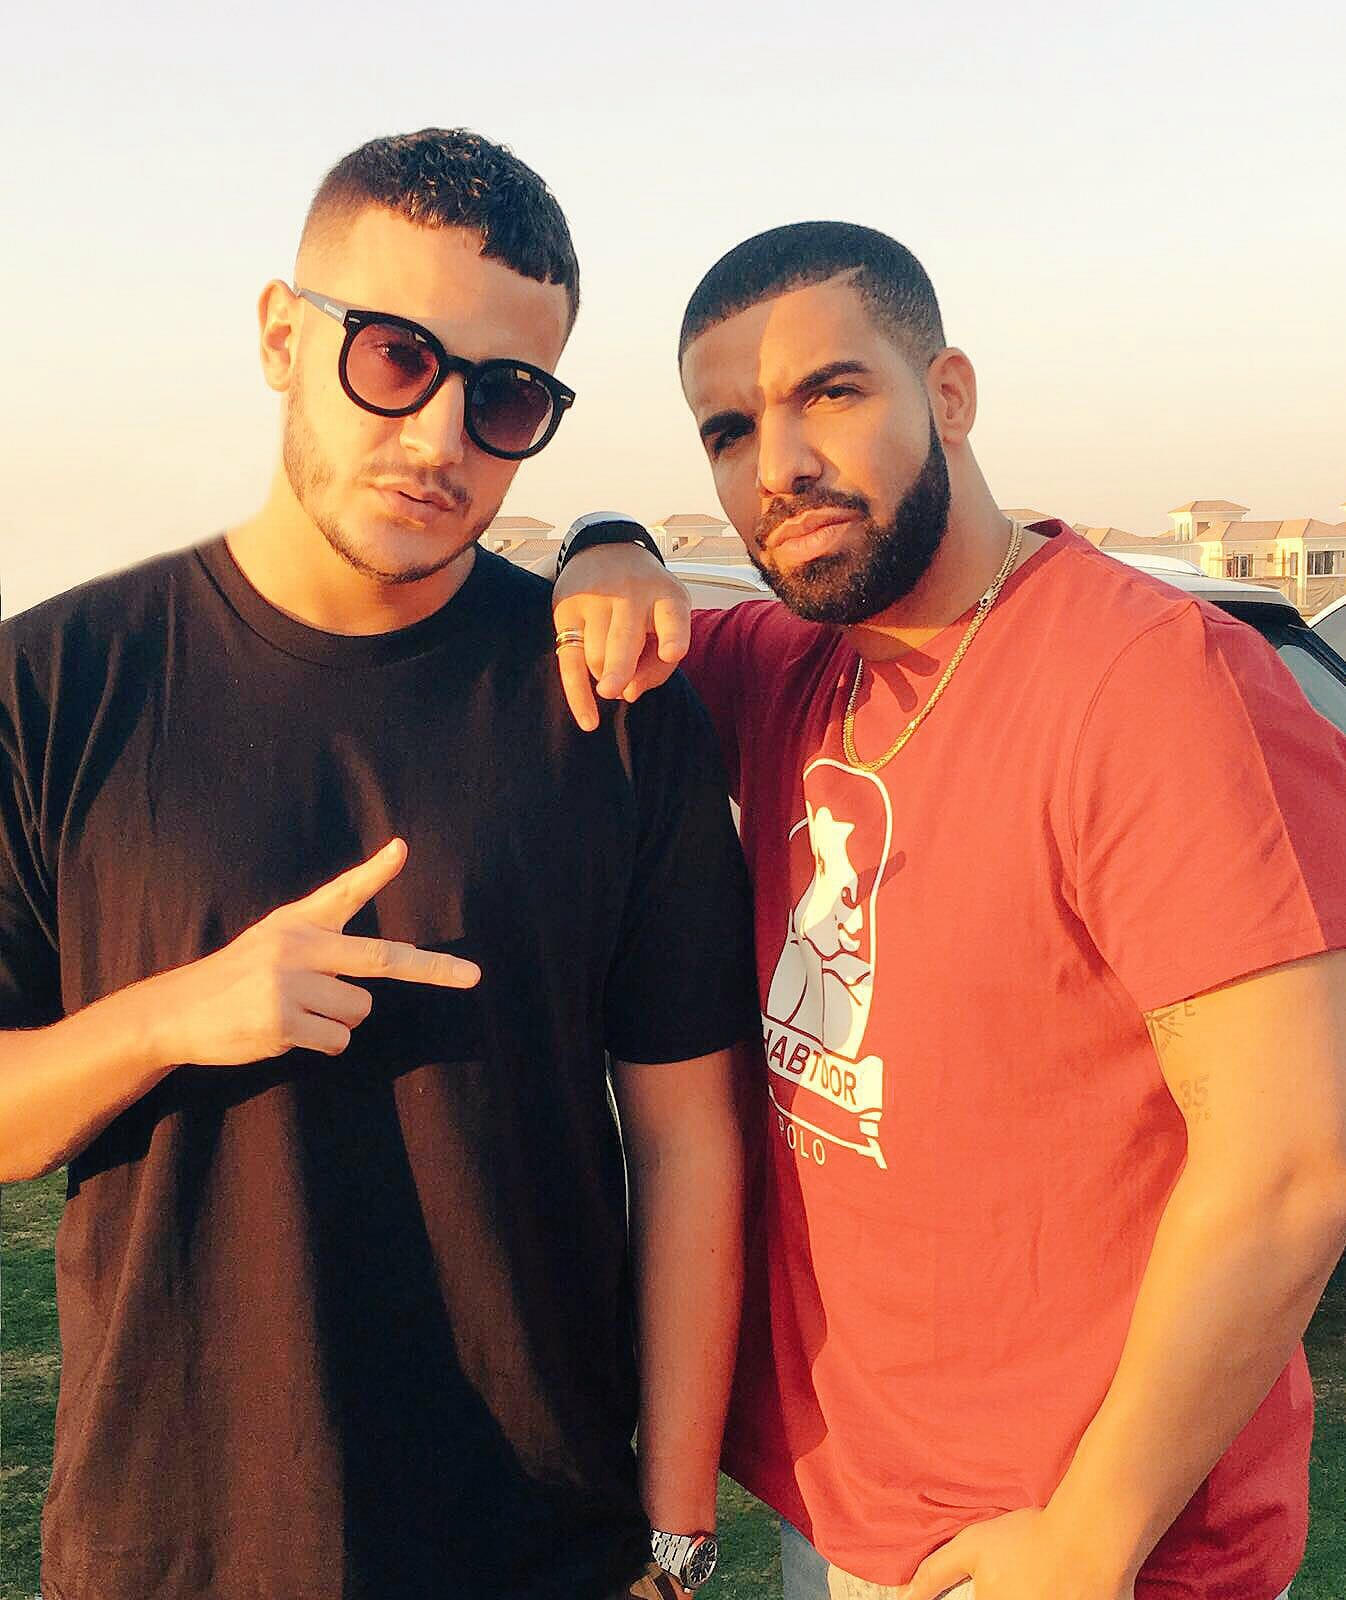 DJ Snake hints at forthcoming Drake collaborationDJ Snake And That Degrassi Dude